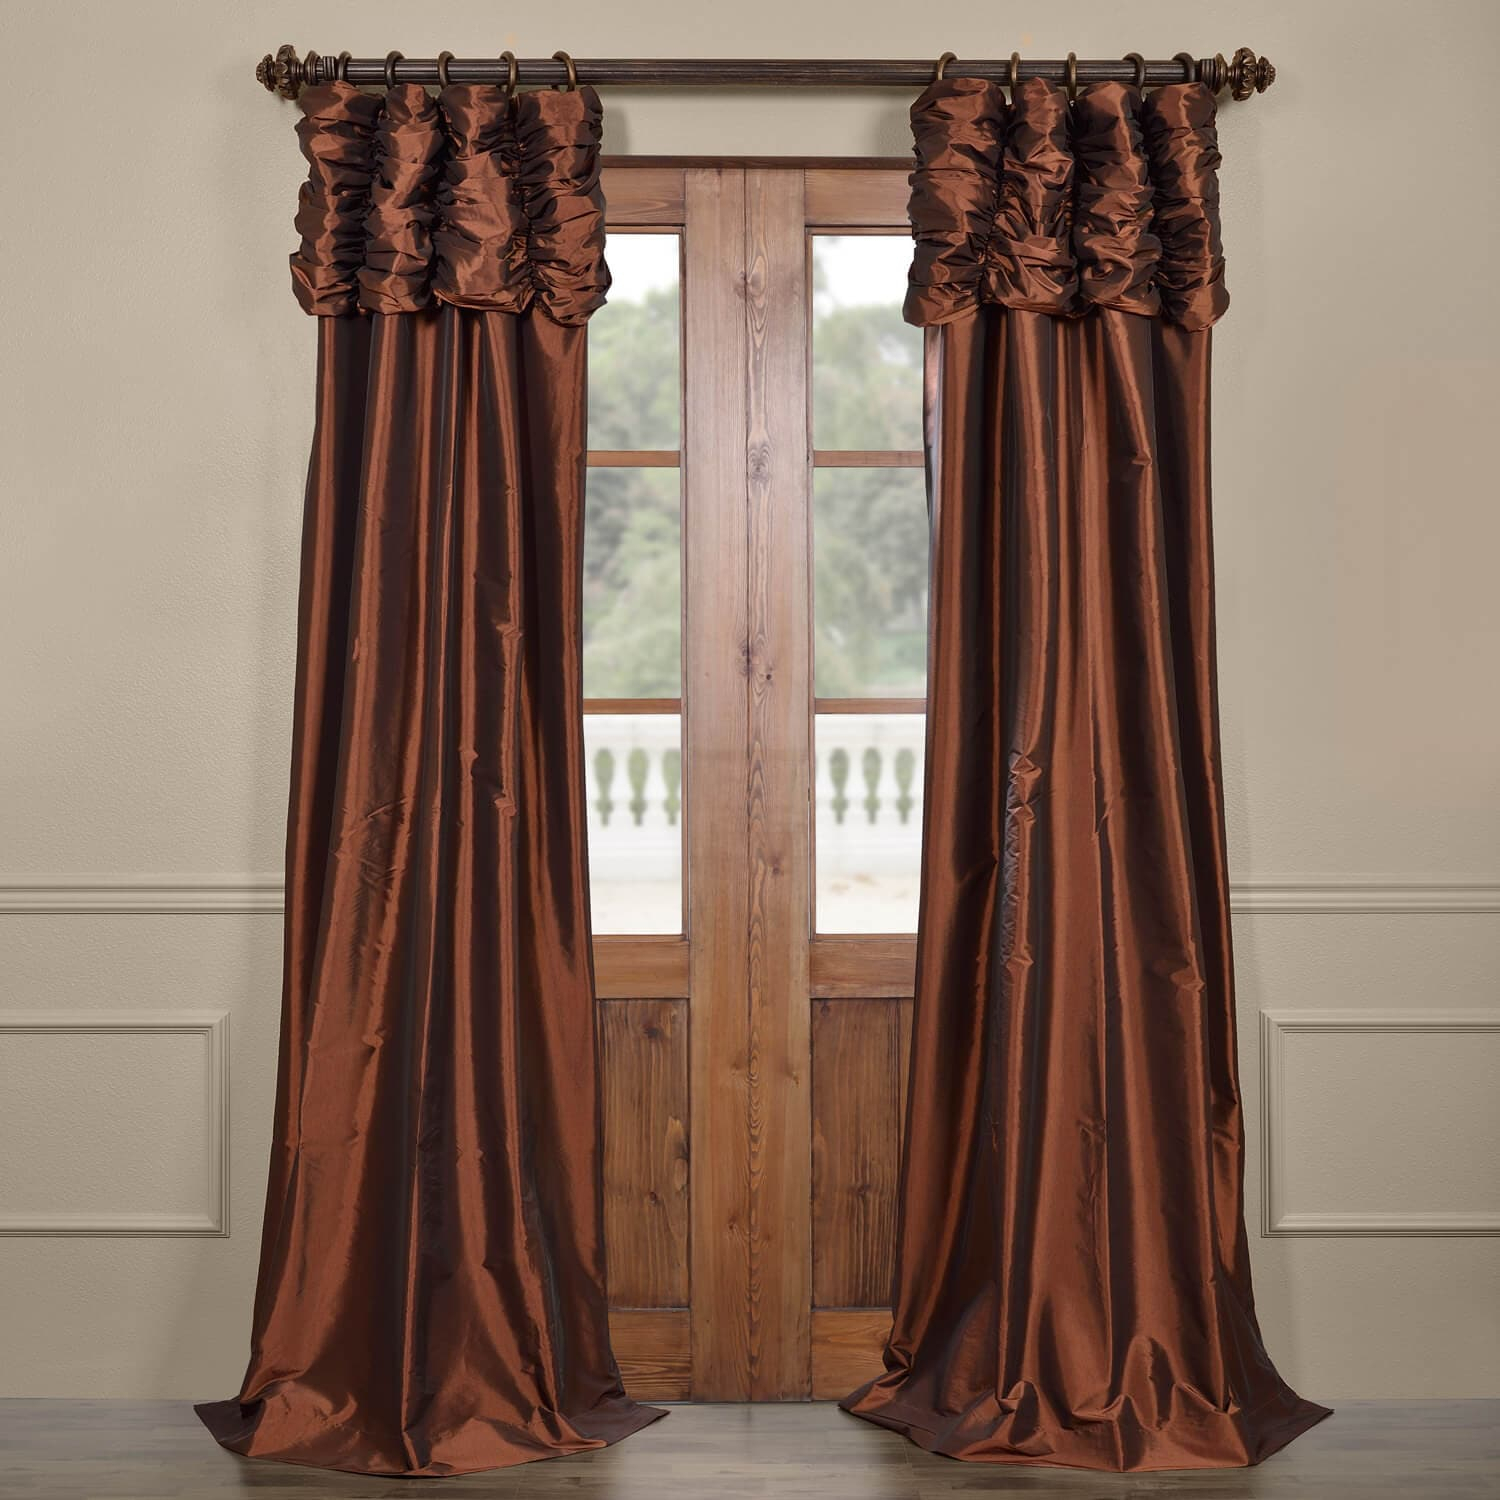 Copper Curtains Panels | Flisol Home For Copper Grove Fulgence Faux Silk Grommet Top Panel Curtains (View 20 of 20)